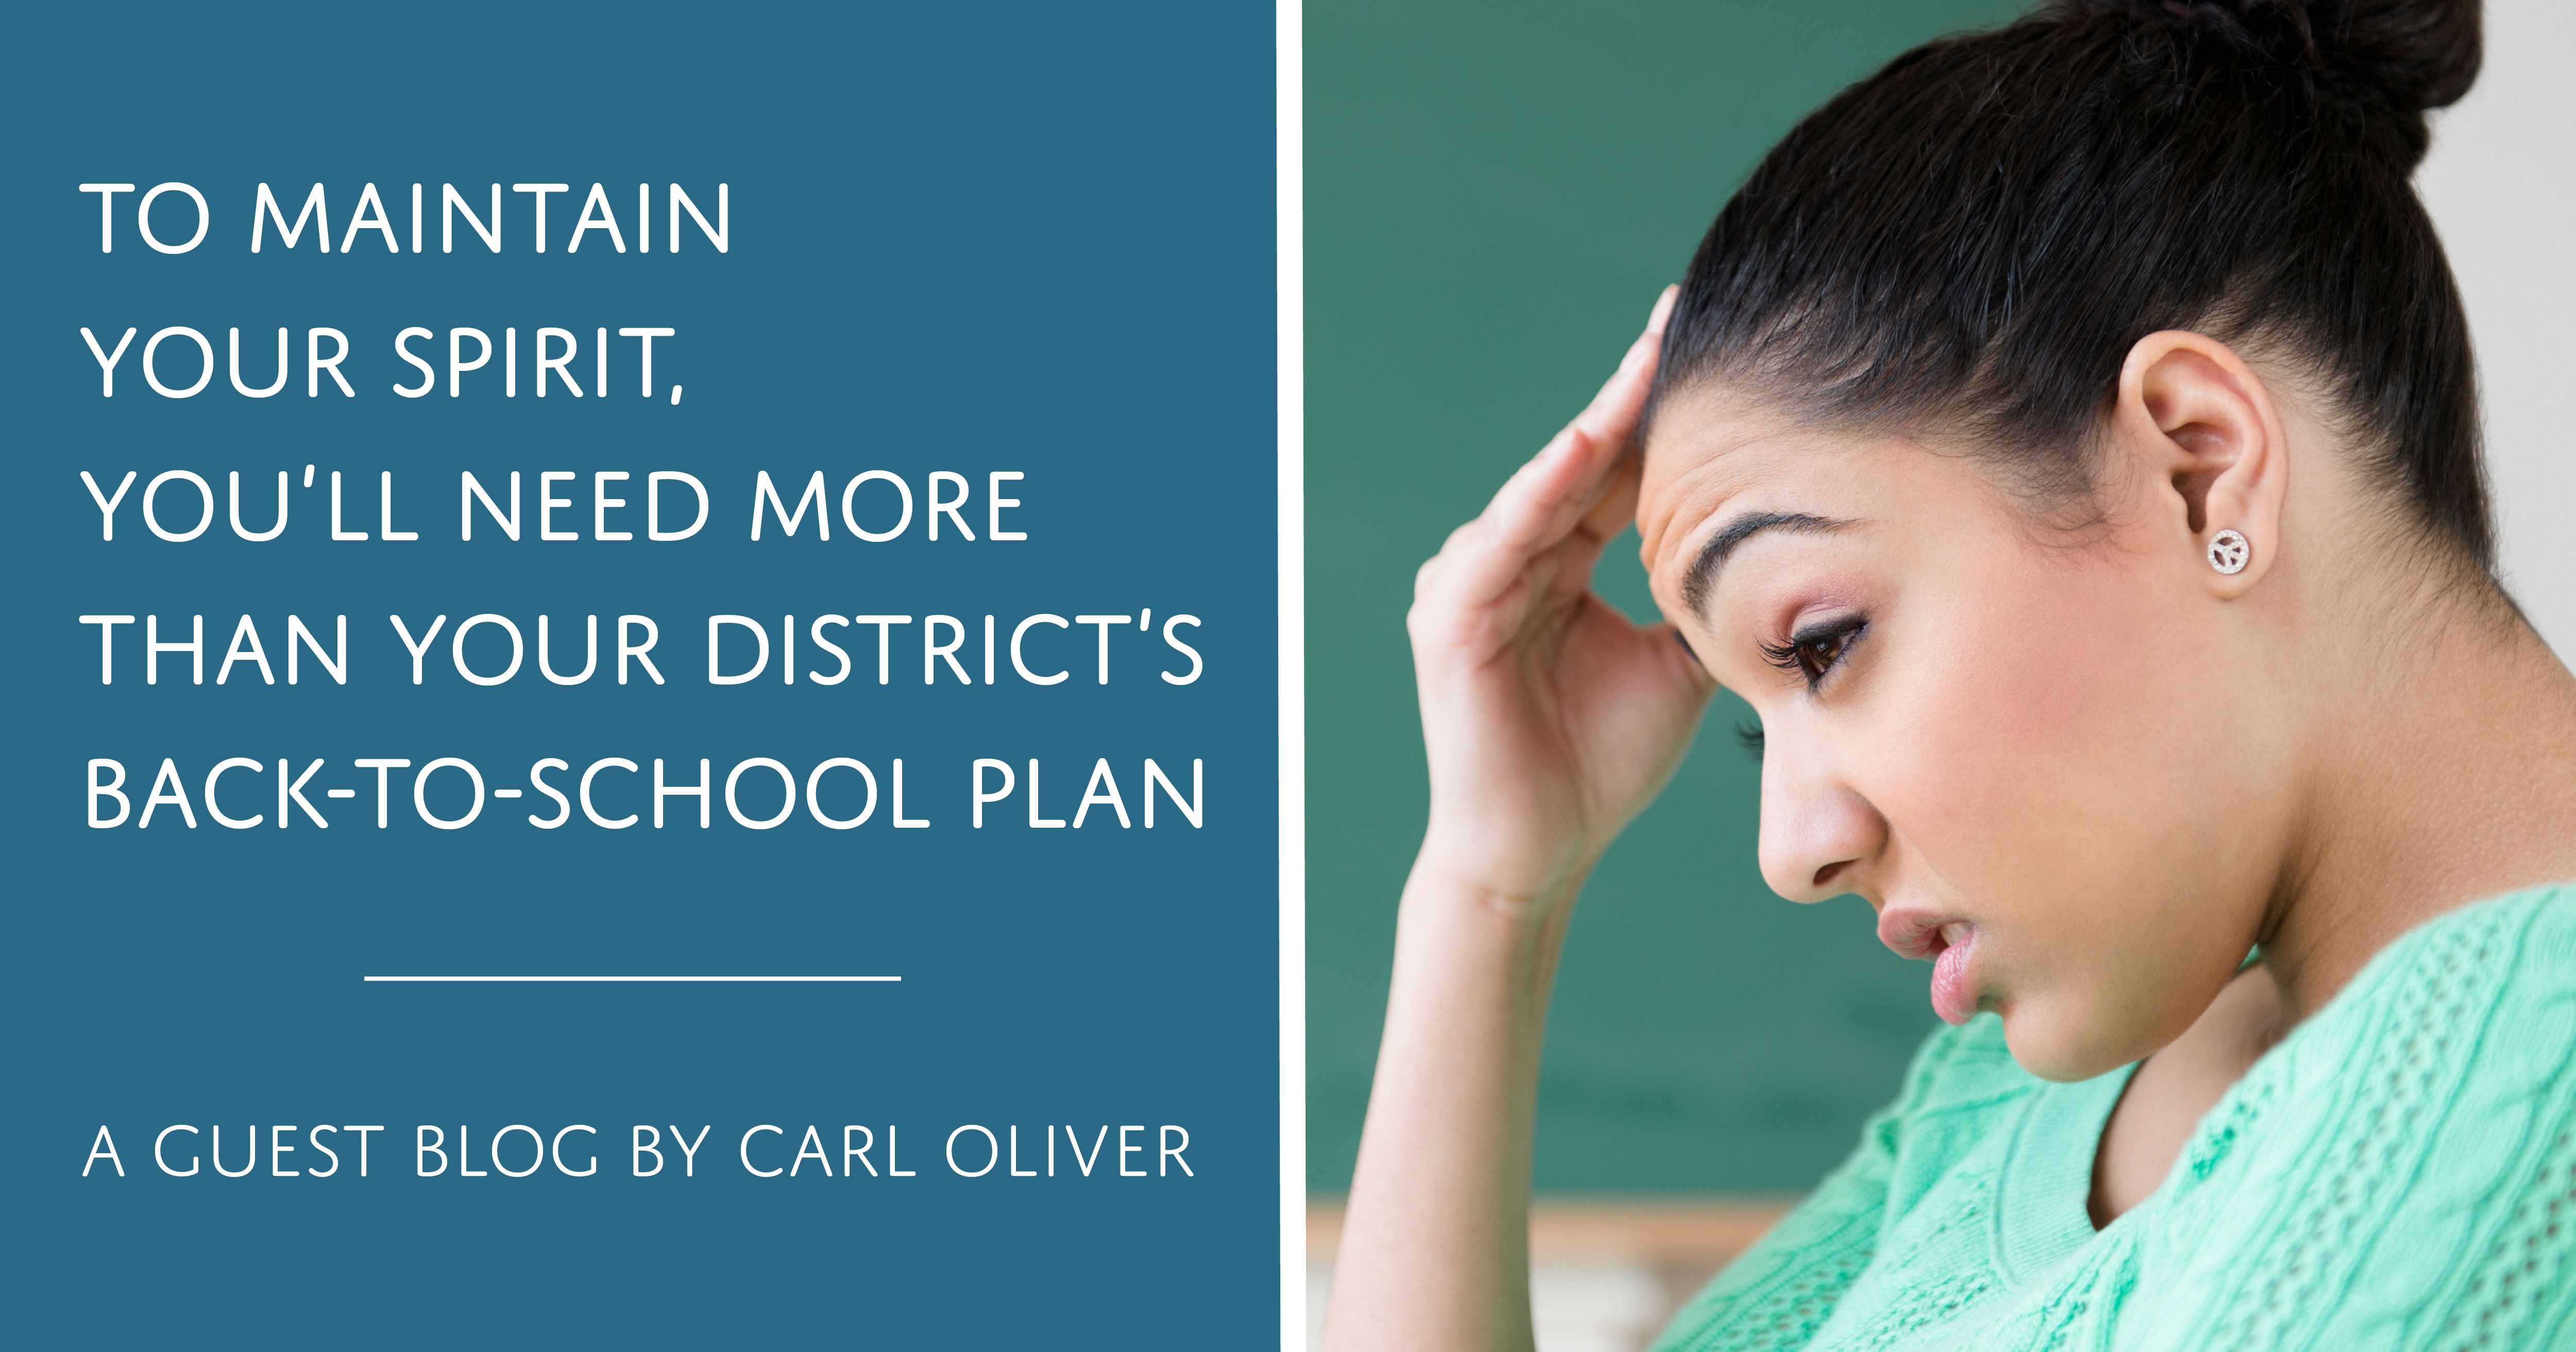 To Maintain Your Spirit, You'll Need More Than Your Back-to-School Plan